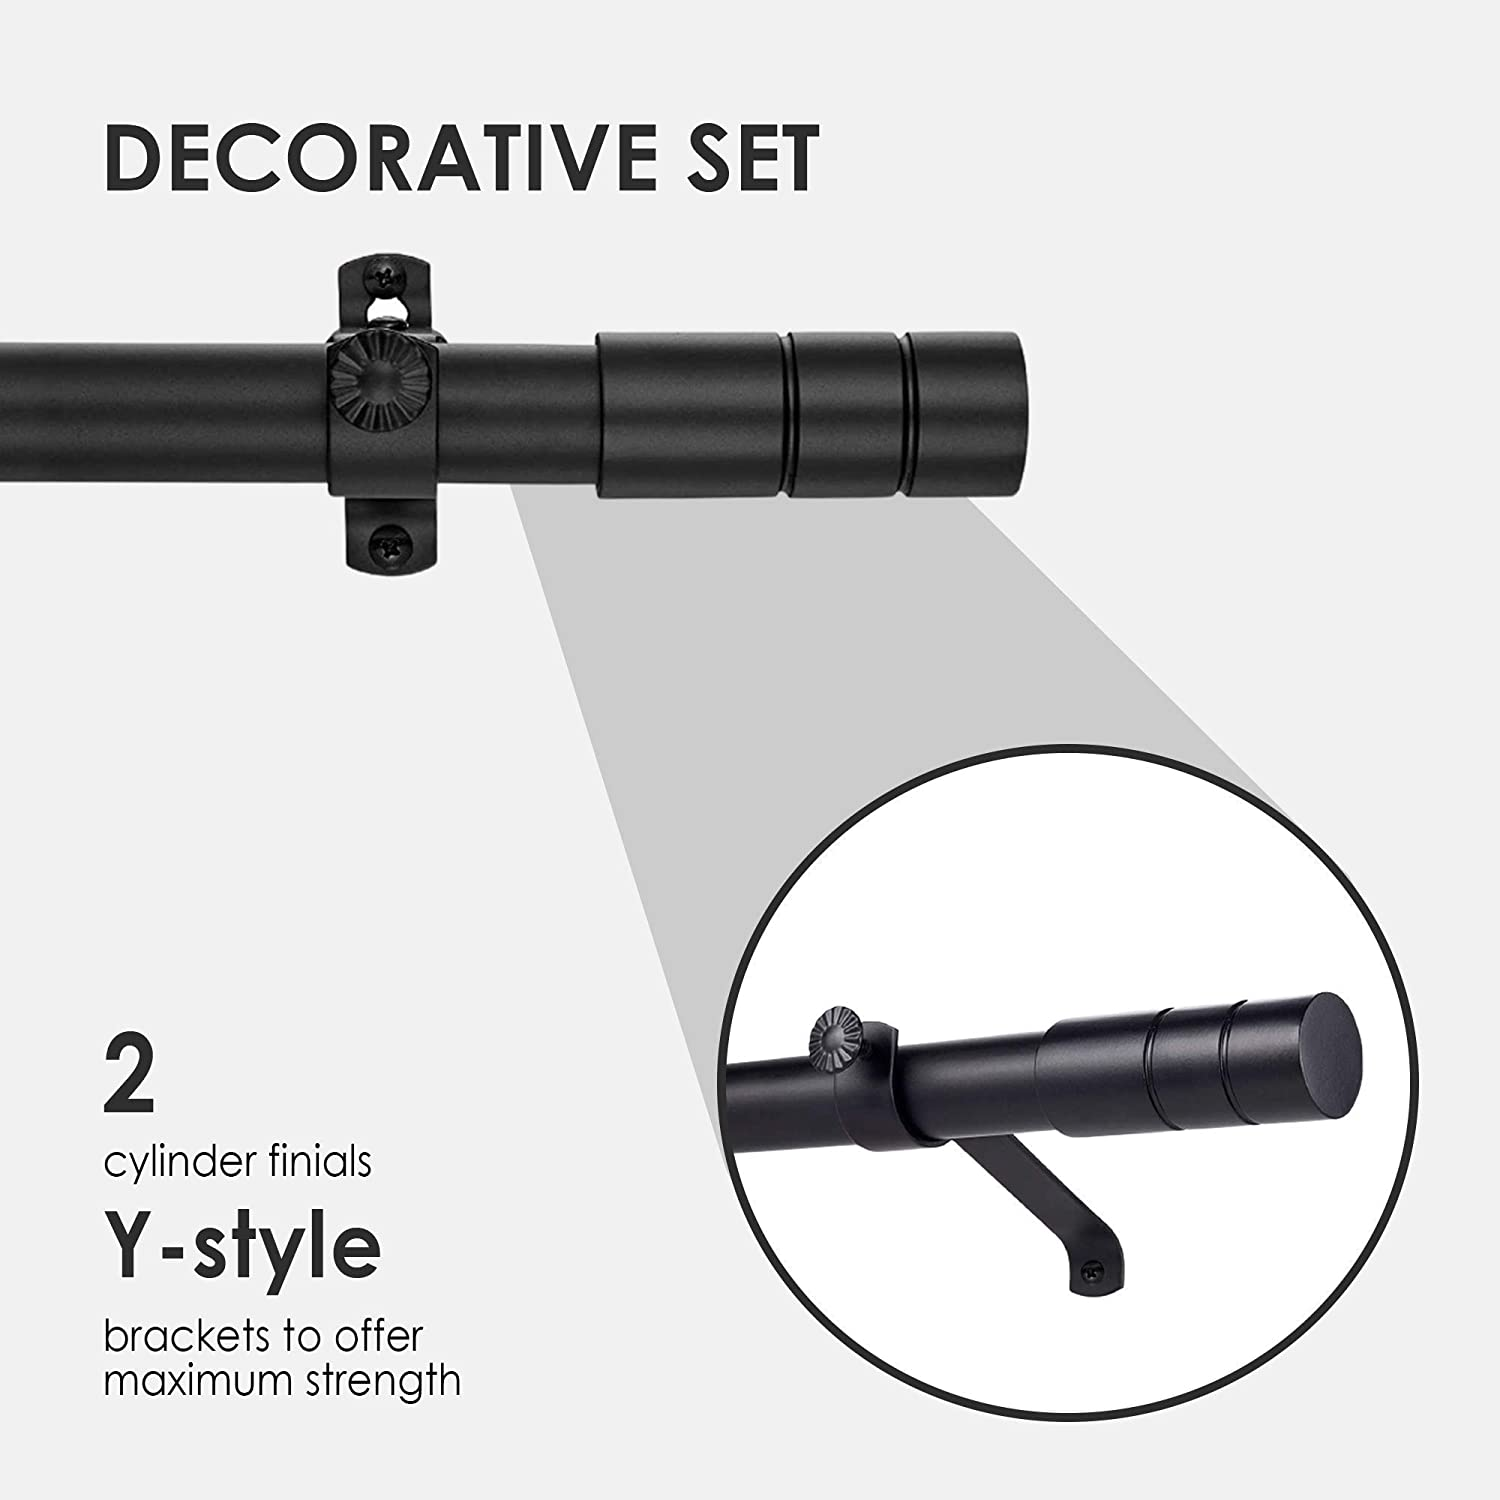 for Kitchen Living Room /& Windows Black Metal Telescopic Drapery Hardware Set Adjustable Rod 72 to 144 Width with Y Style Bracket /& Cup Finial Tailor /& Taylor Curtain Rod With Cylinder Finials